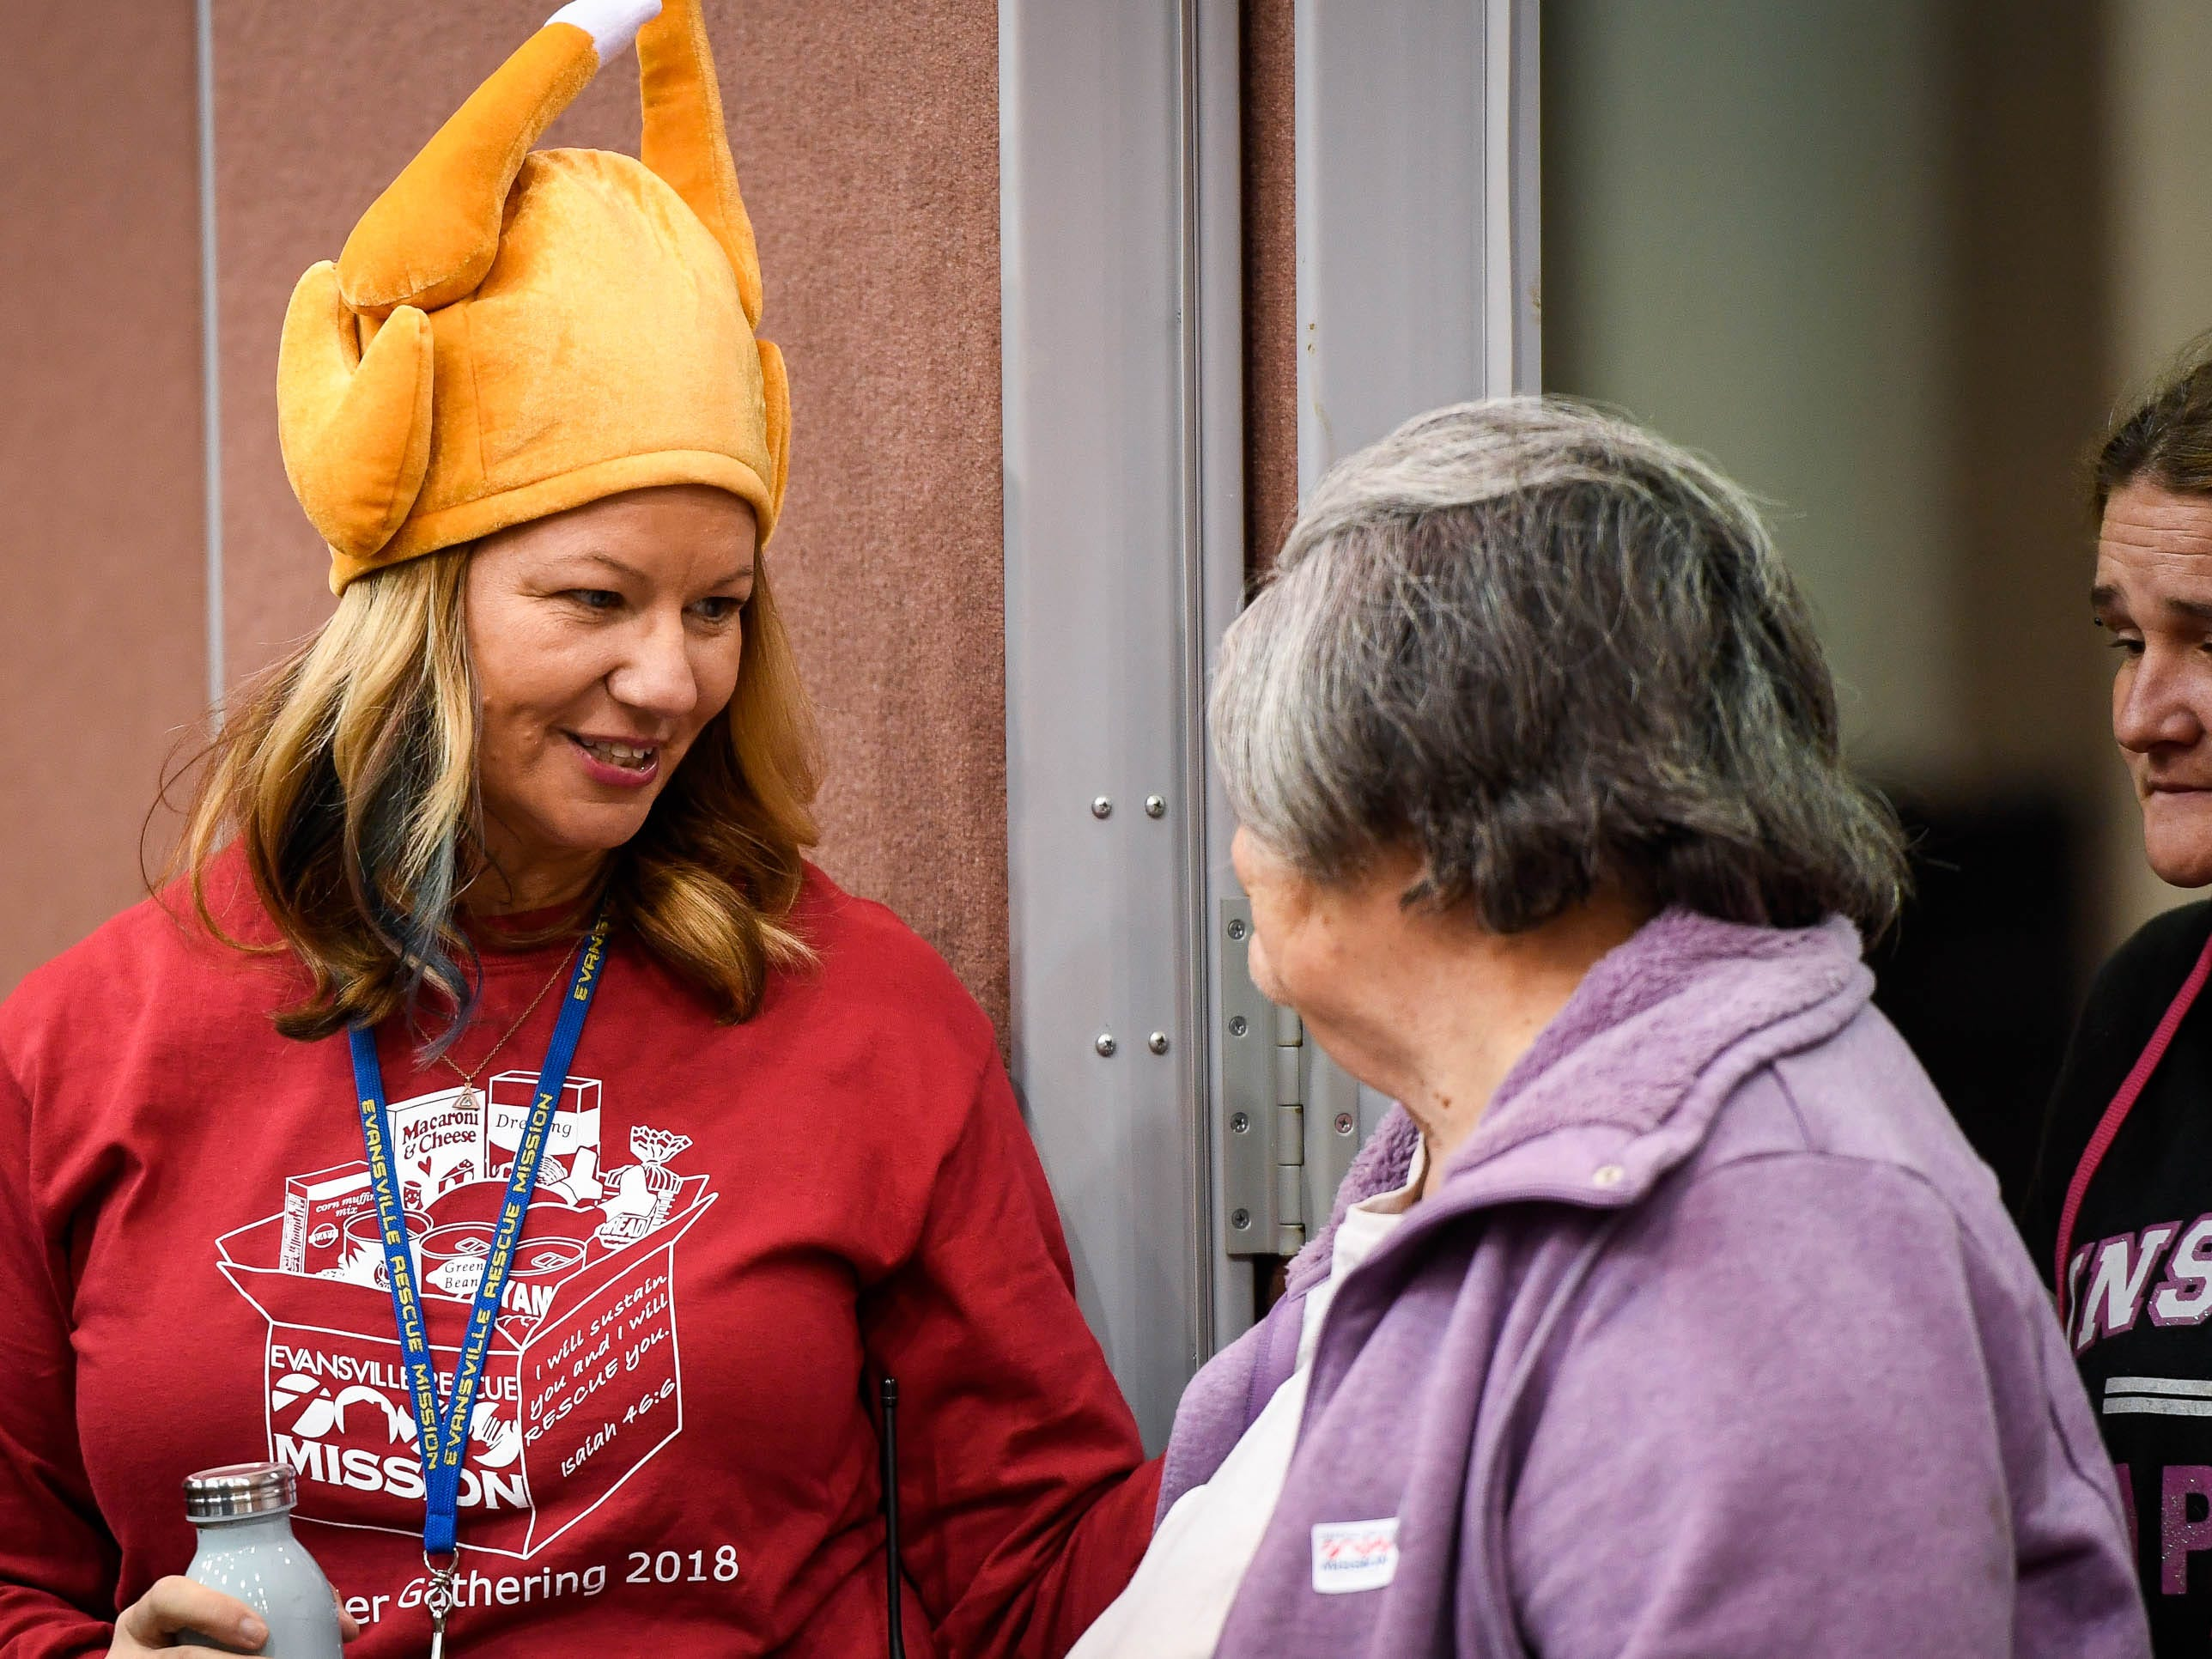 Volunteer Amanda Crowe helps families in need find a helper at the Evansville Rescue Mission's 96th annual Gobbler Gathering held at the Old National Events Plaza Tuesday, November 20, 2018.